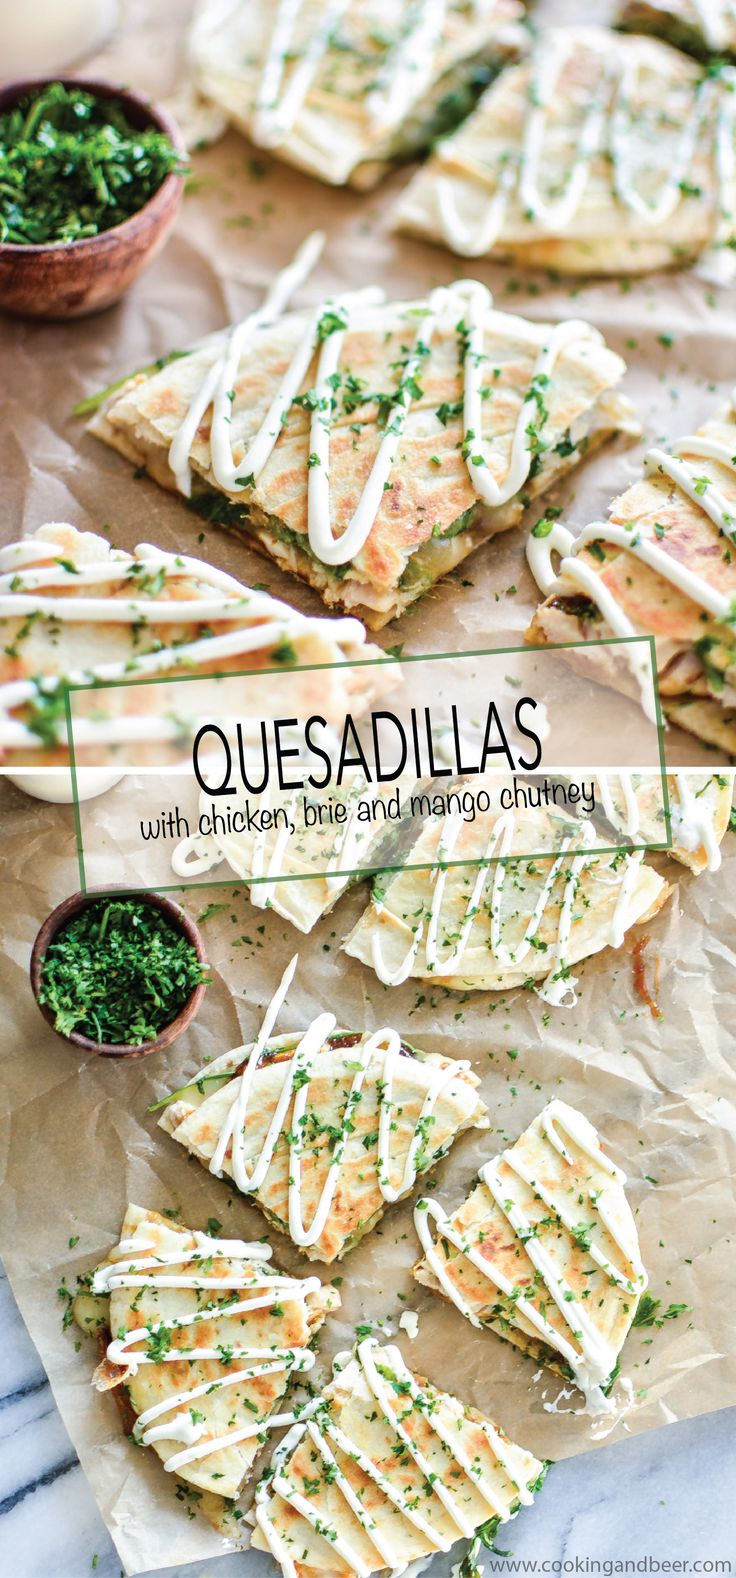 Quesadillas au brie, au poulet et au chutney de mangue. (Chicken and Brie Quesadillas with Mango Chutney are the perfect quick appetizer, lunch or dinner recipe! | www.cookingandbeer.com) (http://www.cookingandbeer.com/2015/03/chicken-and-brie-quesadillas-with-homemade-mango-chutney/)